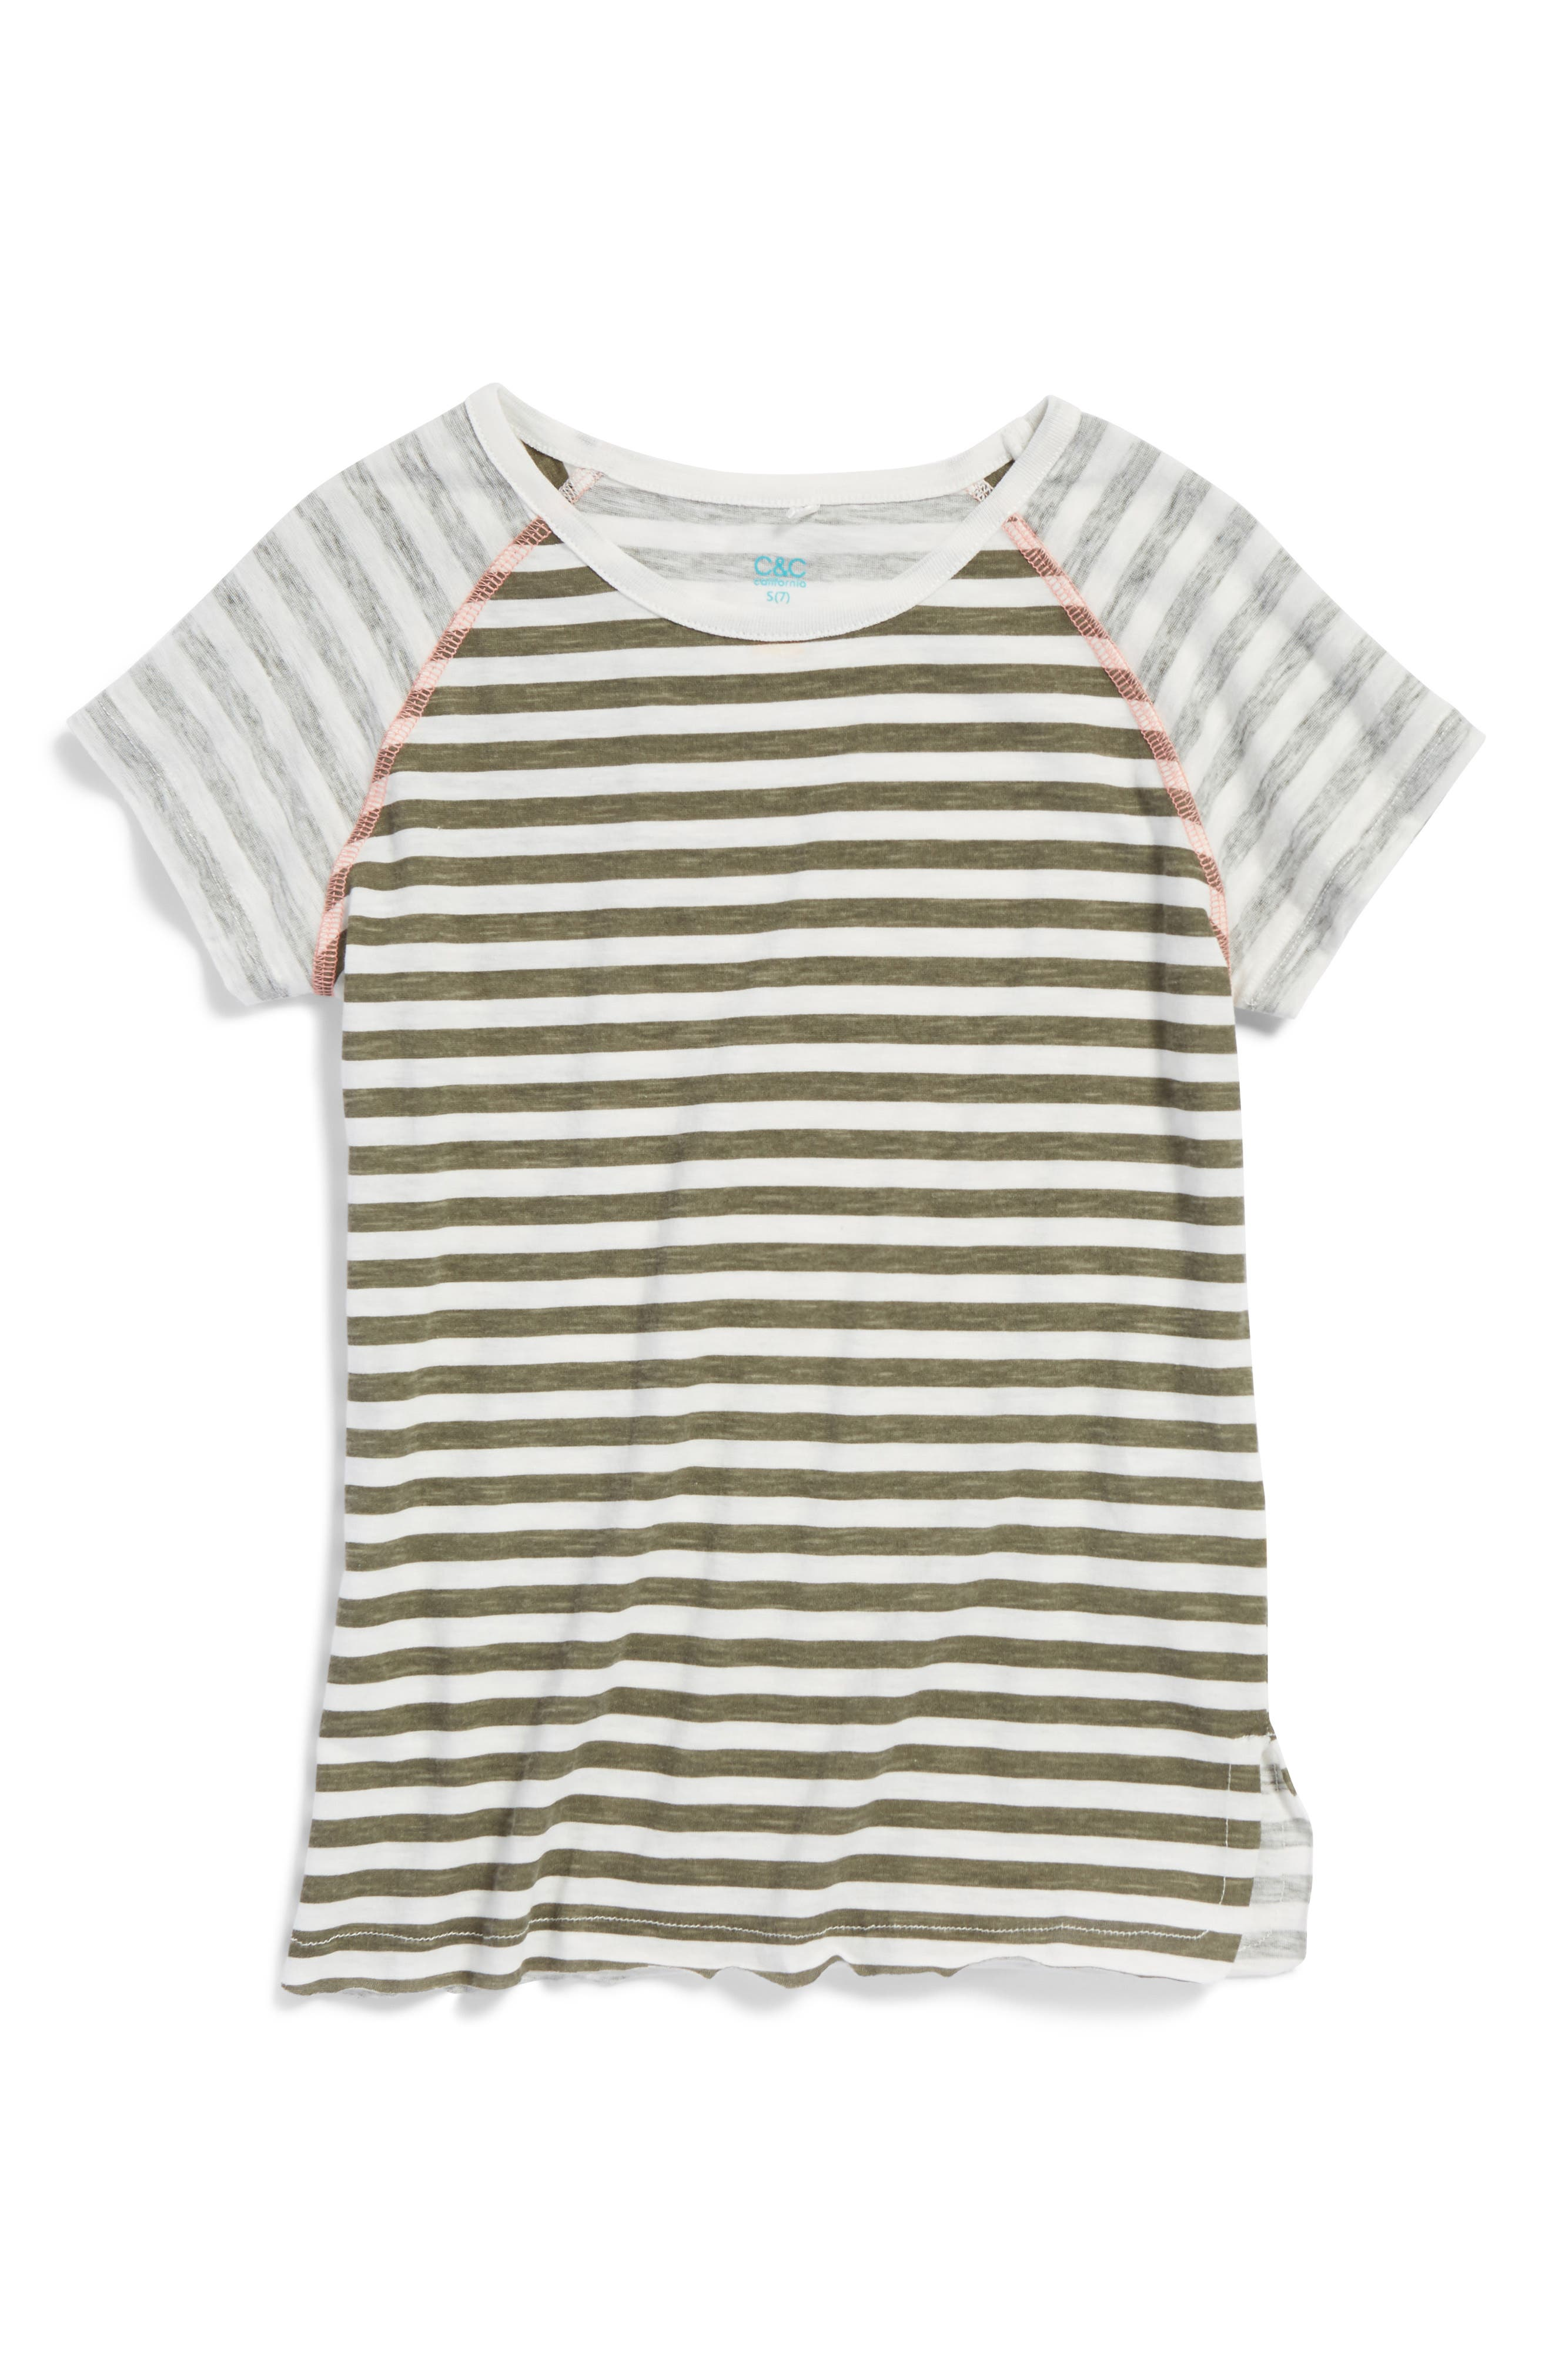 Henley Tee,                         Main,                         color, Olive